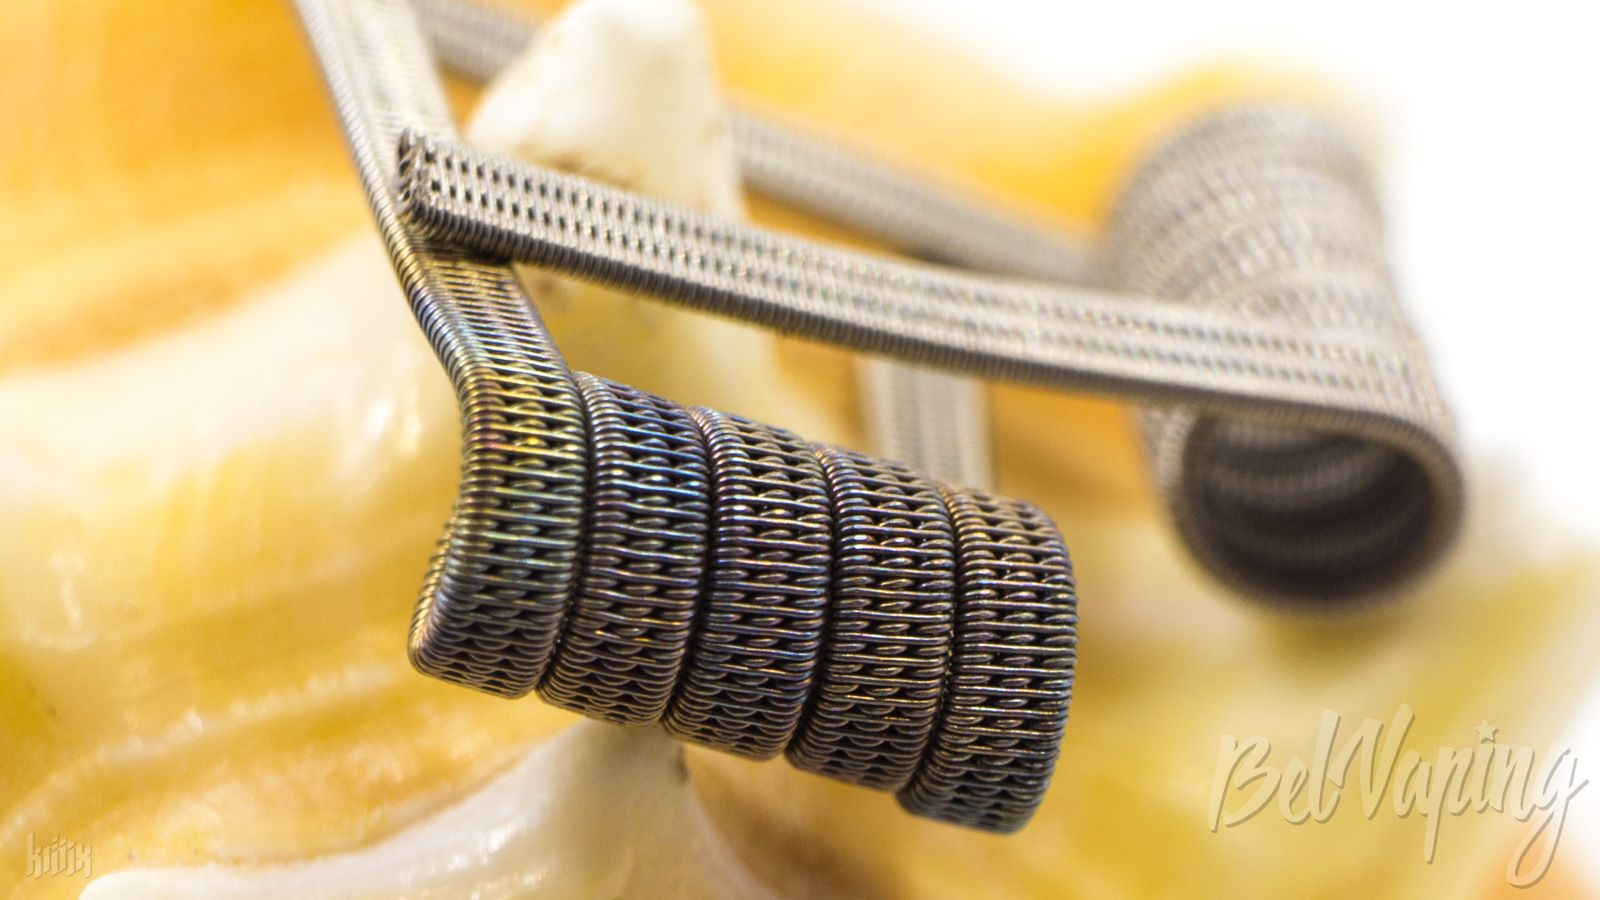 Тип спирали: Triple Staggered Clapton Coil (трипл стаггеред коил)